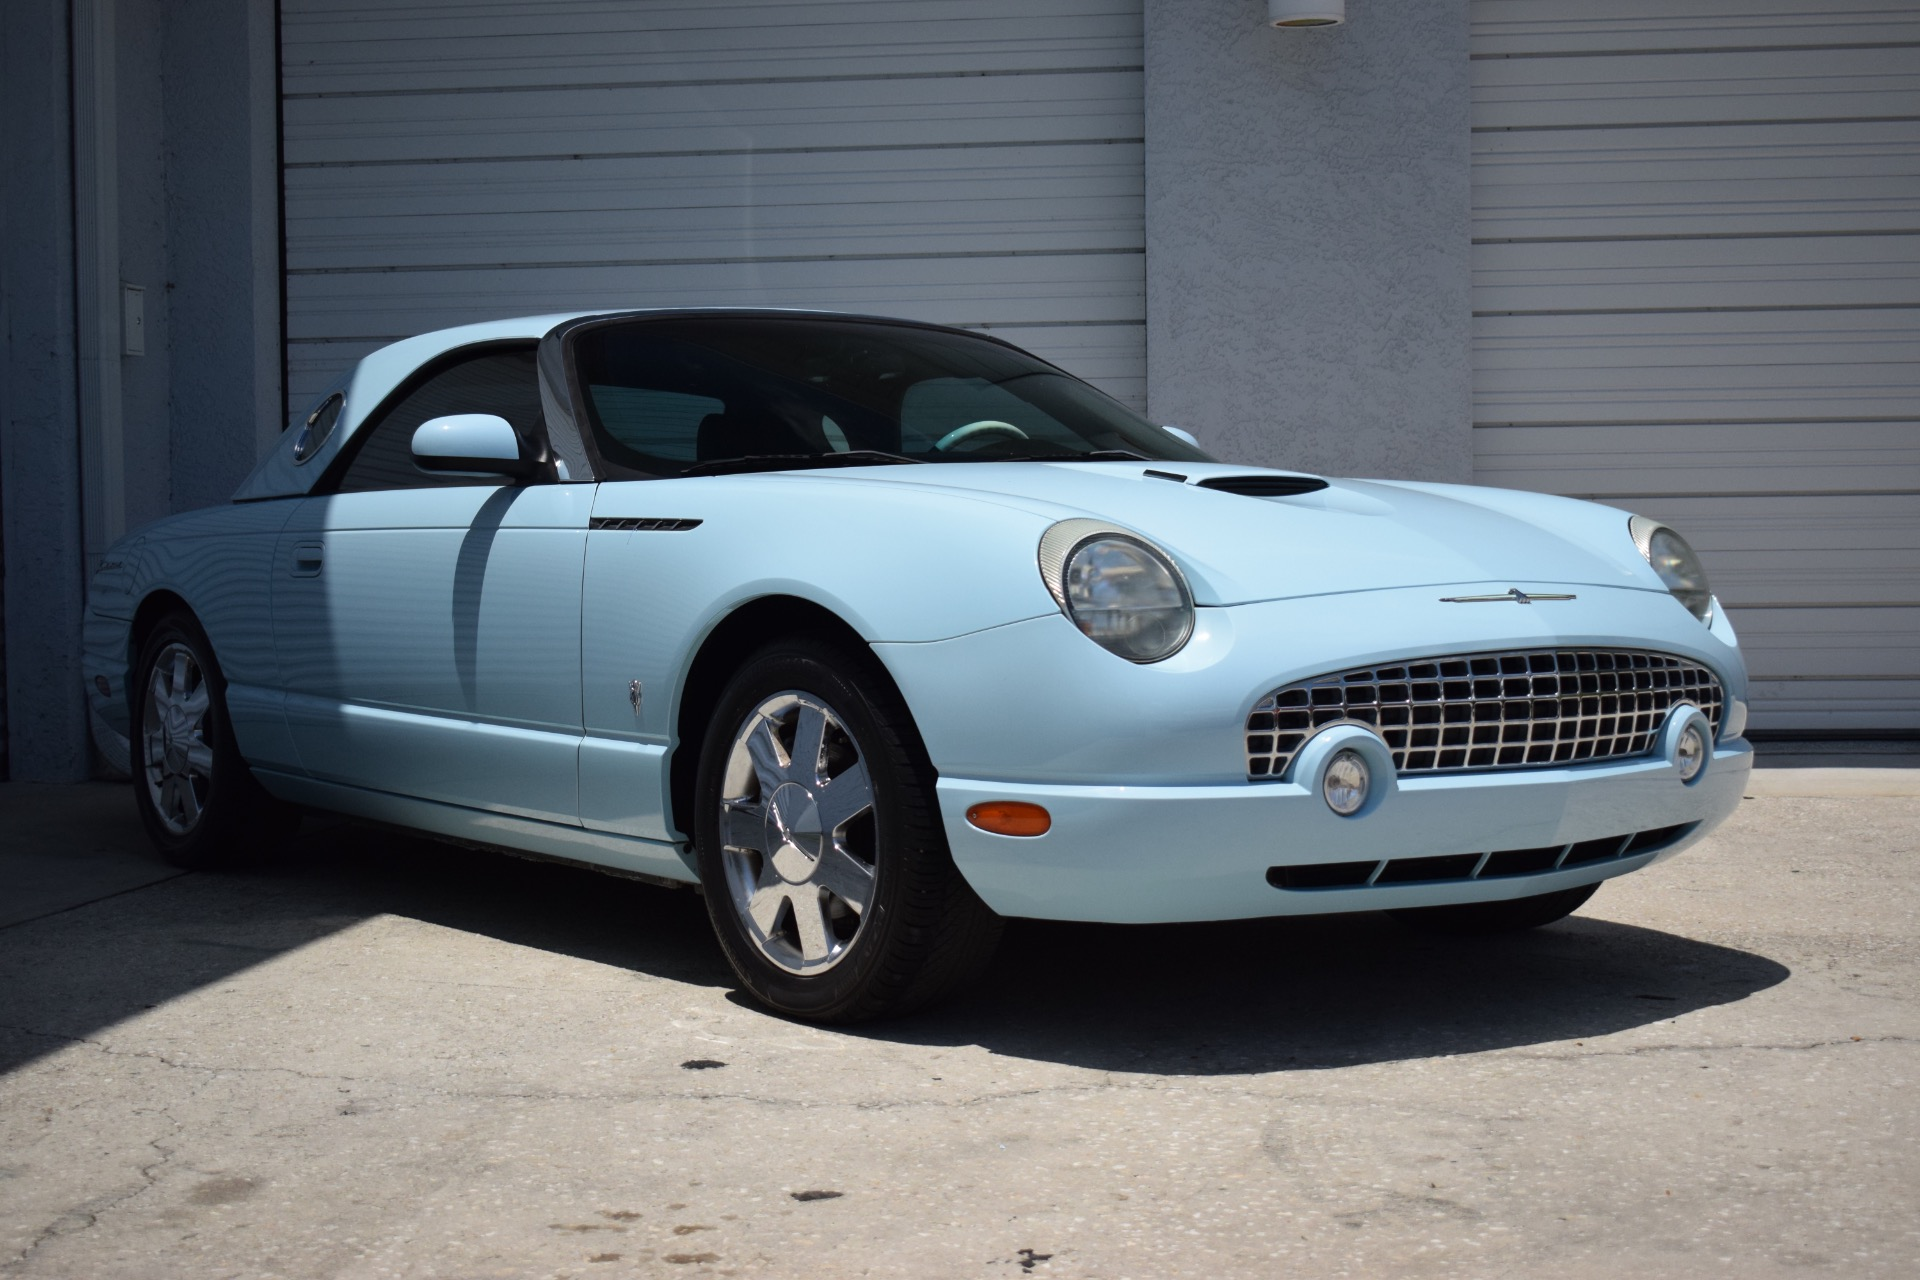 Used 2003 Ford Thunderbird Convertible 2D for sale $14,997 at Track and Field Motors in Safety Harbor FL